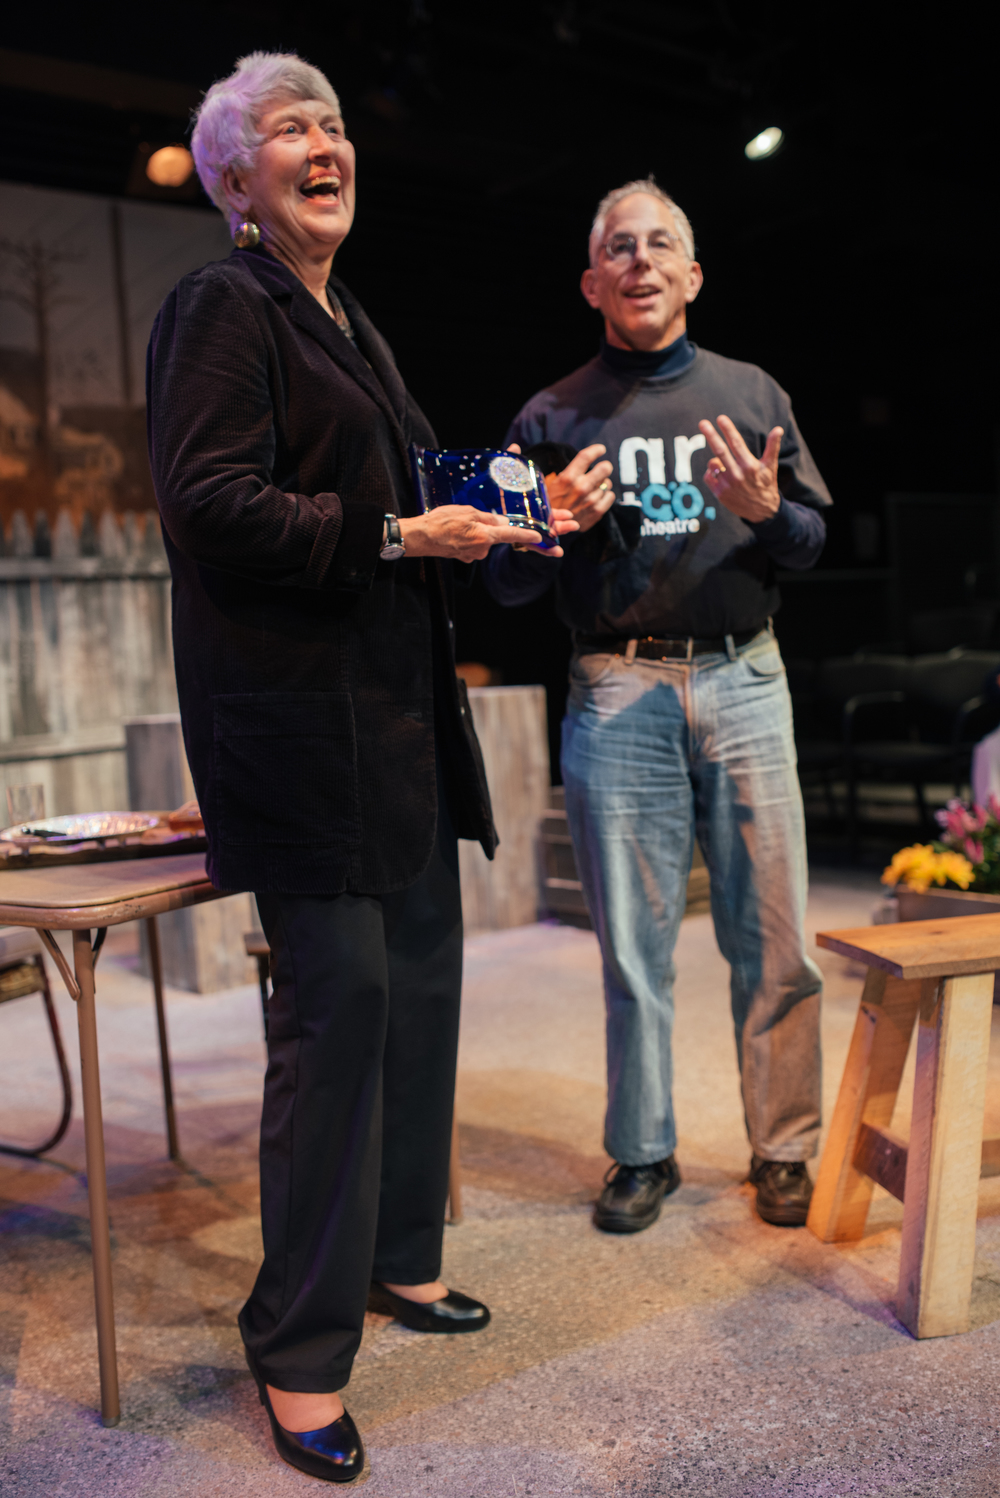 Barbara Bear receiving DC Theatre Scene's Gary Lee Maker Audience Award from Tom Holzman, who won it in 2012, September, 23rd, 2014.